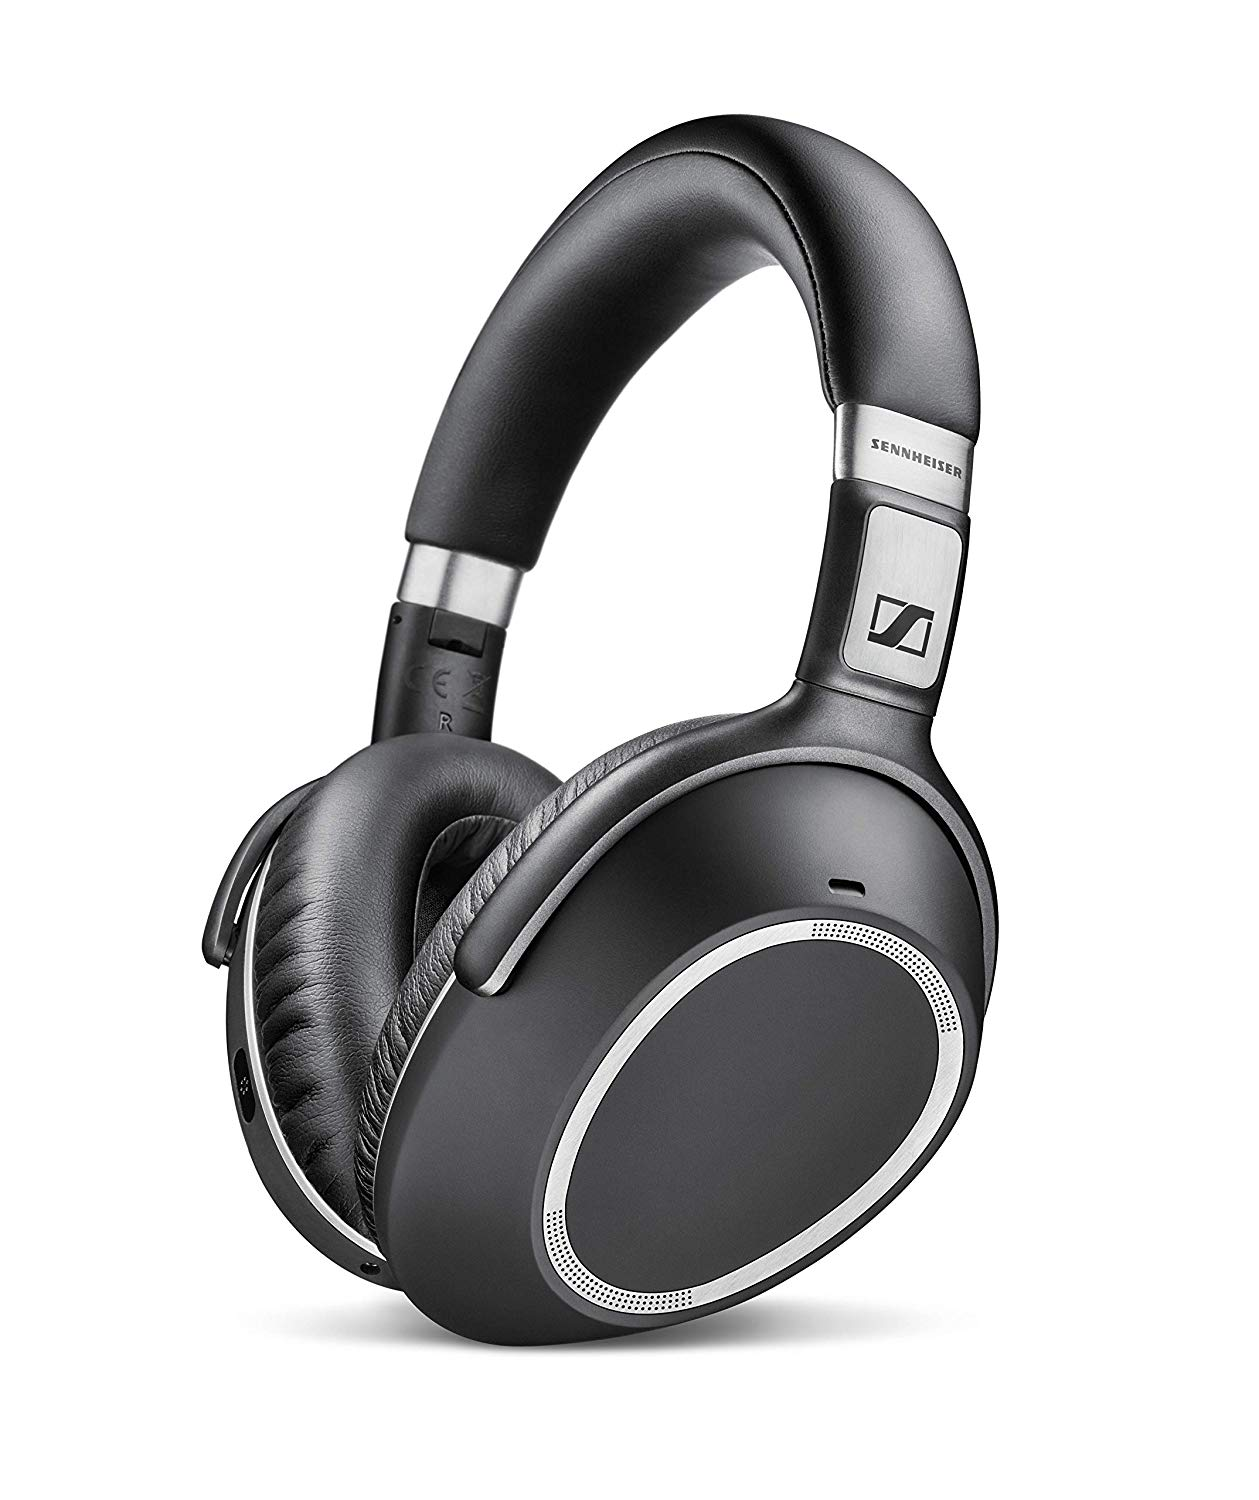 Sennheiser PXC 550 Wireless - $229.99 - $119.96 off or 34%